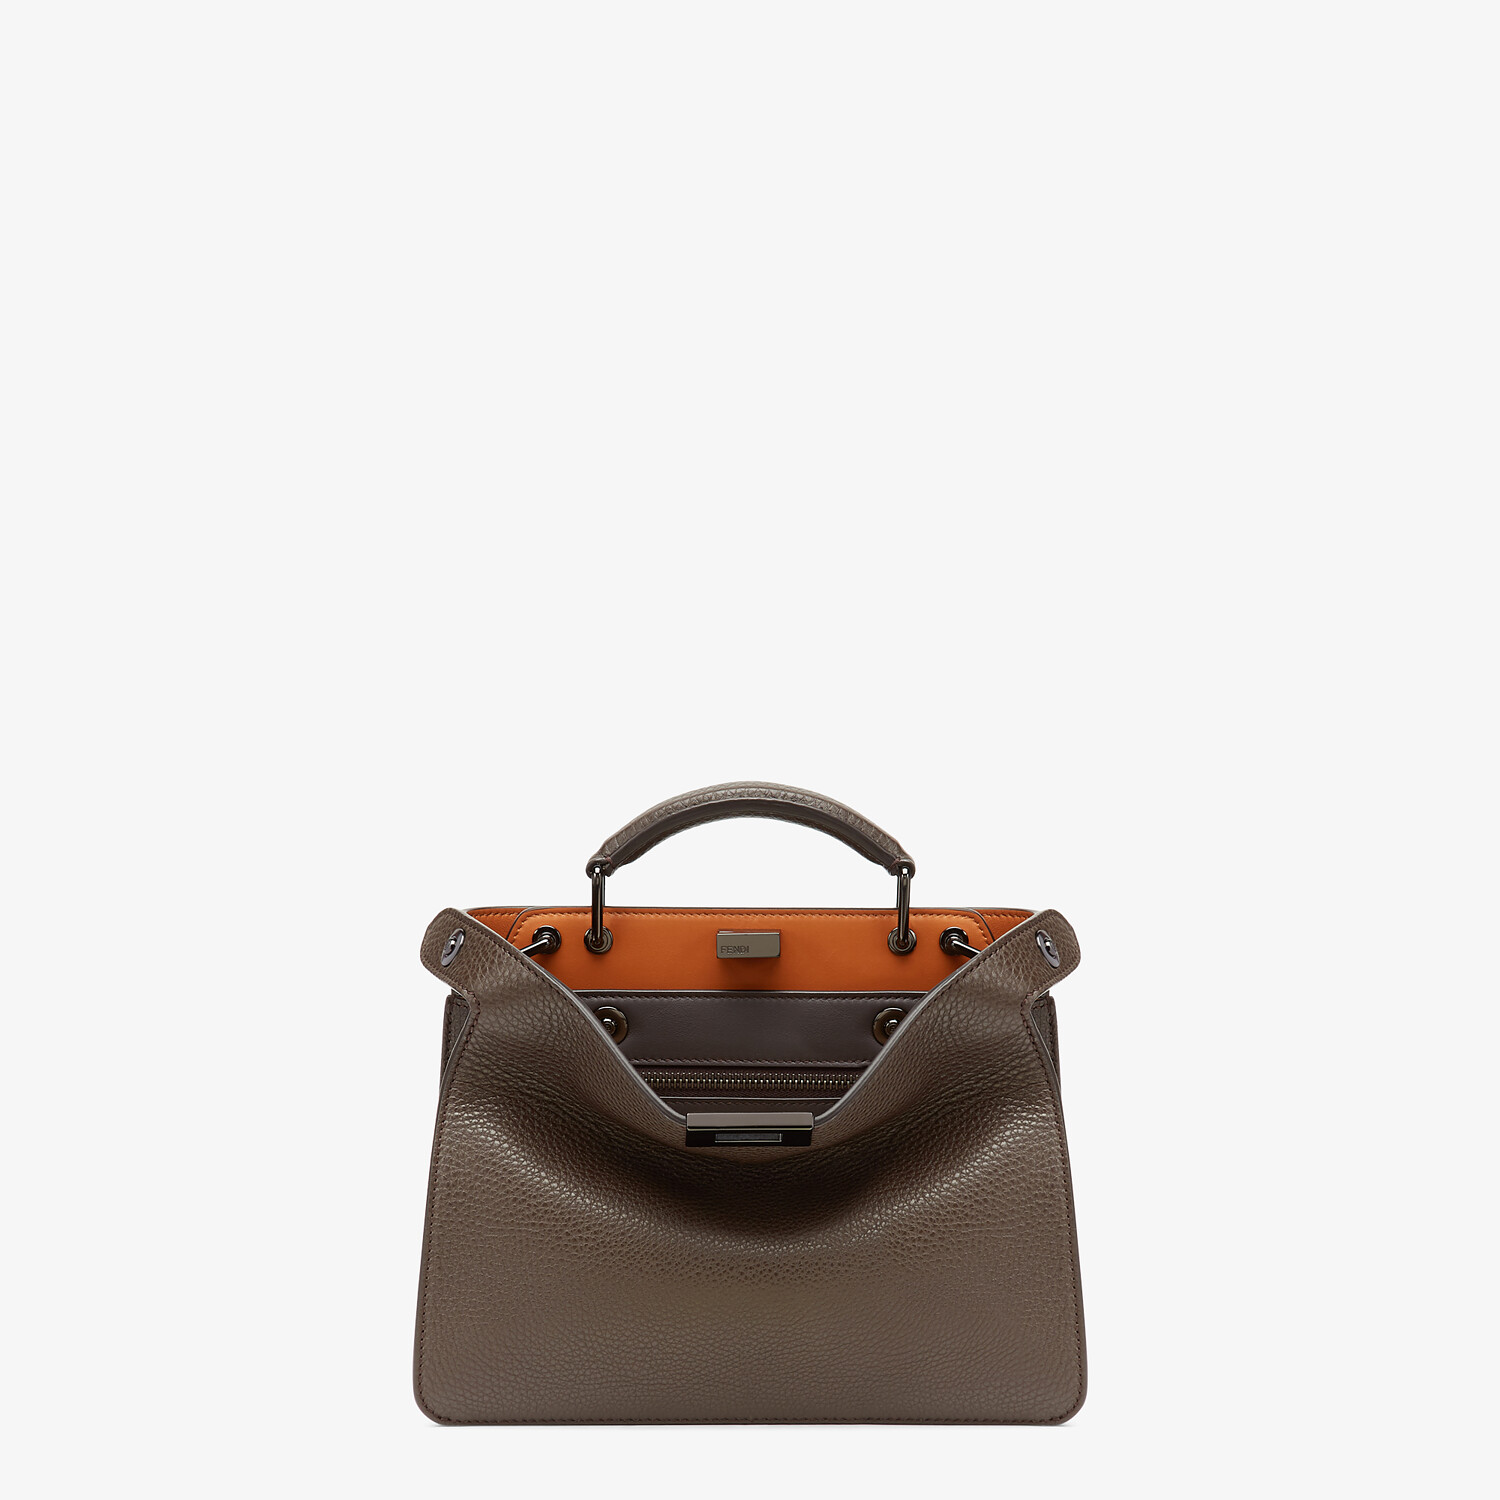 FENDI PEEKABOO ISEEU MINI - Brown leather bag - view 1 detail